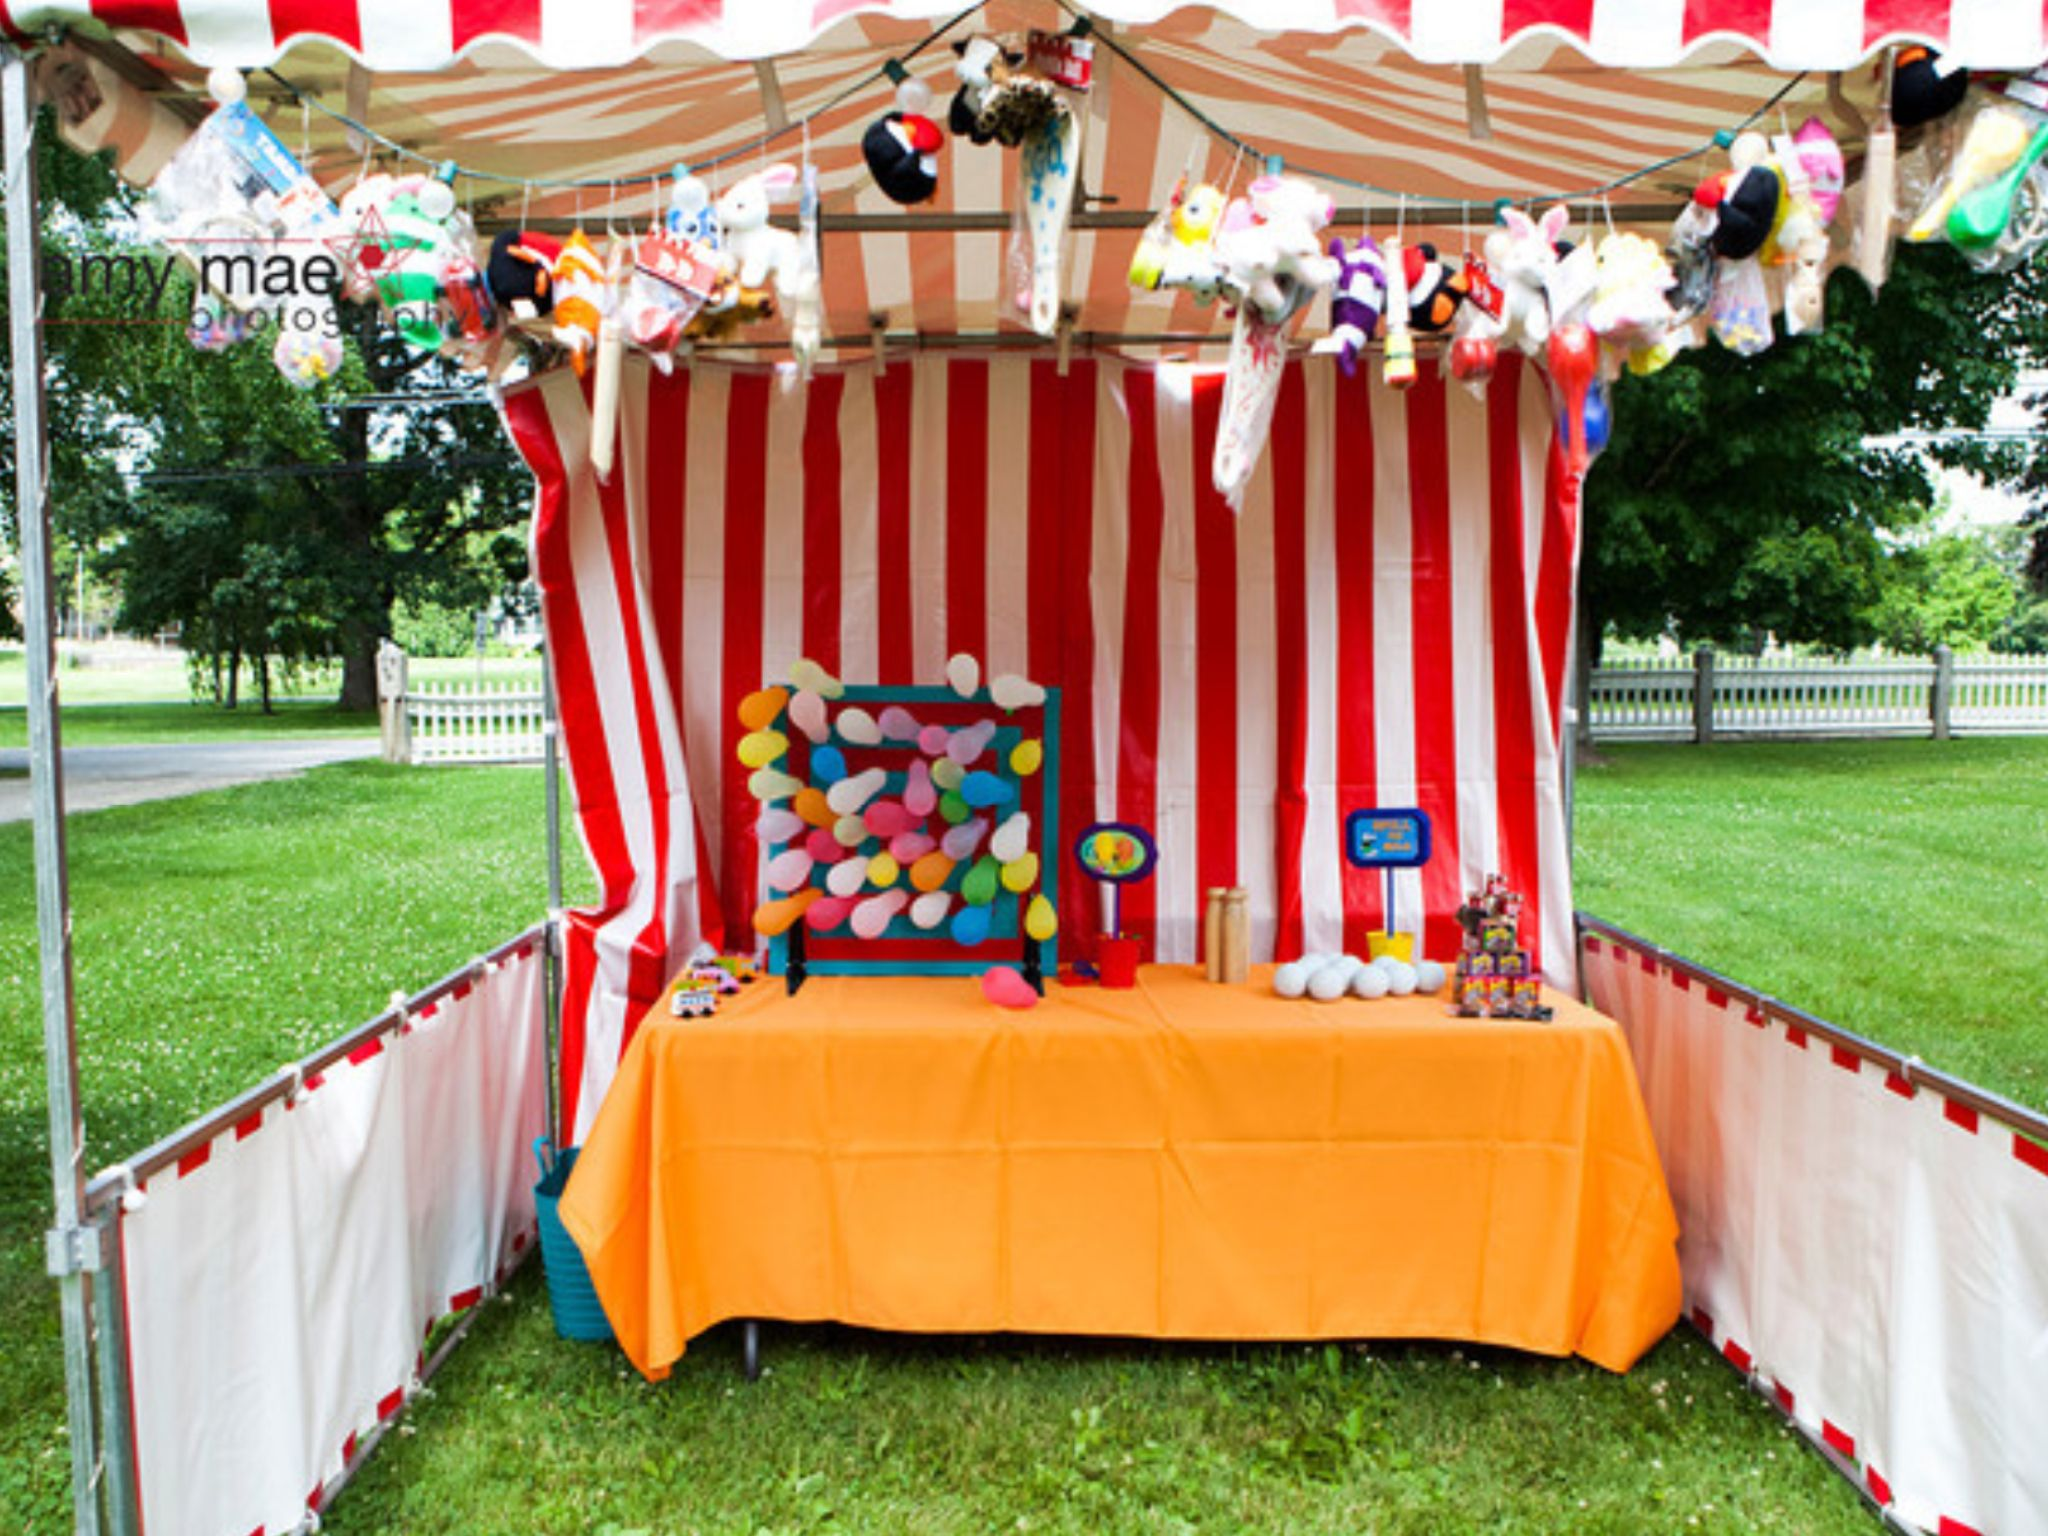 Game Tent Prizes On Display Carnival Wedding Pinterest More Tents Carnival Wedding And